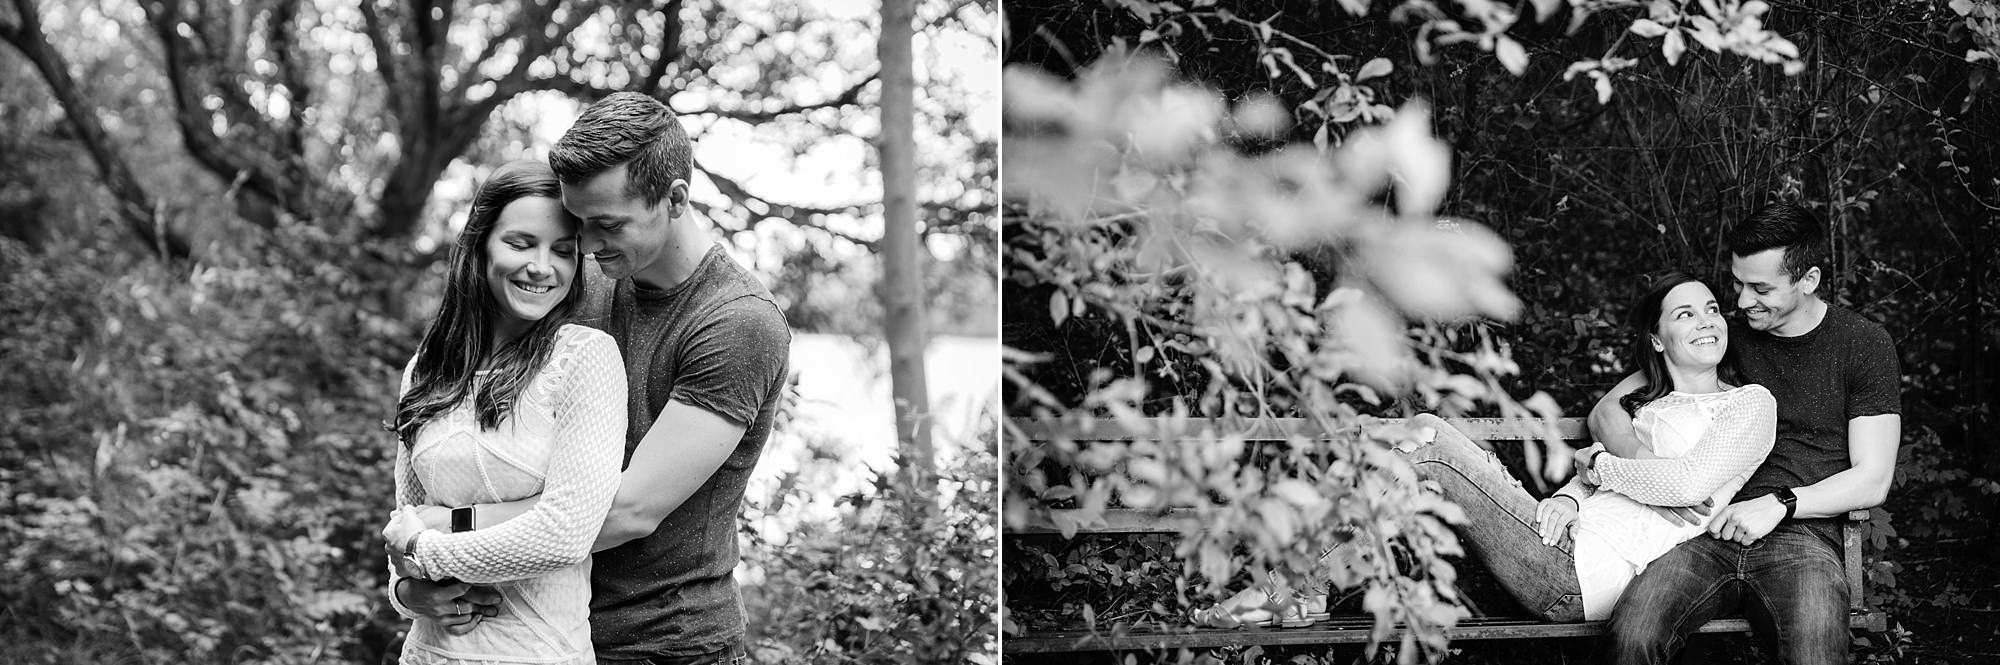 Countryside engagement photography portrait of couple close together